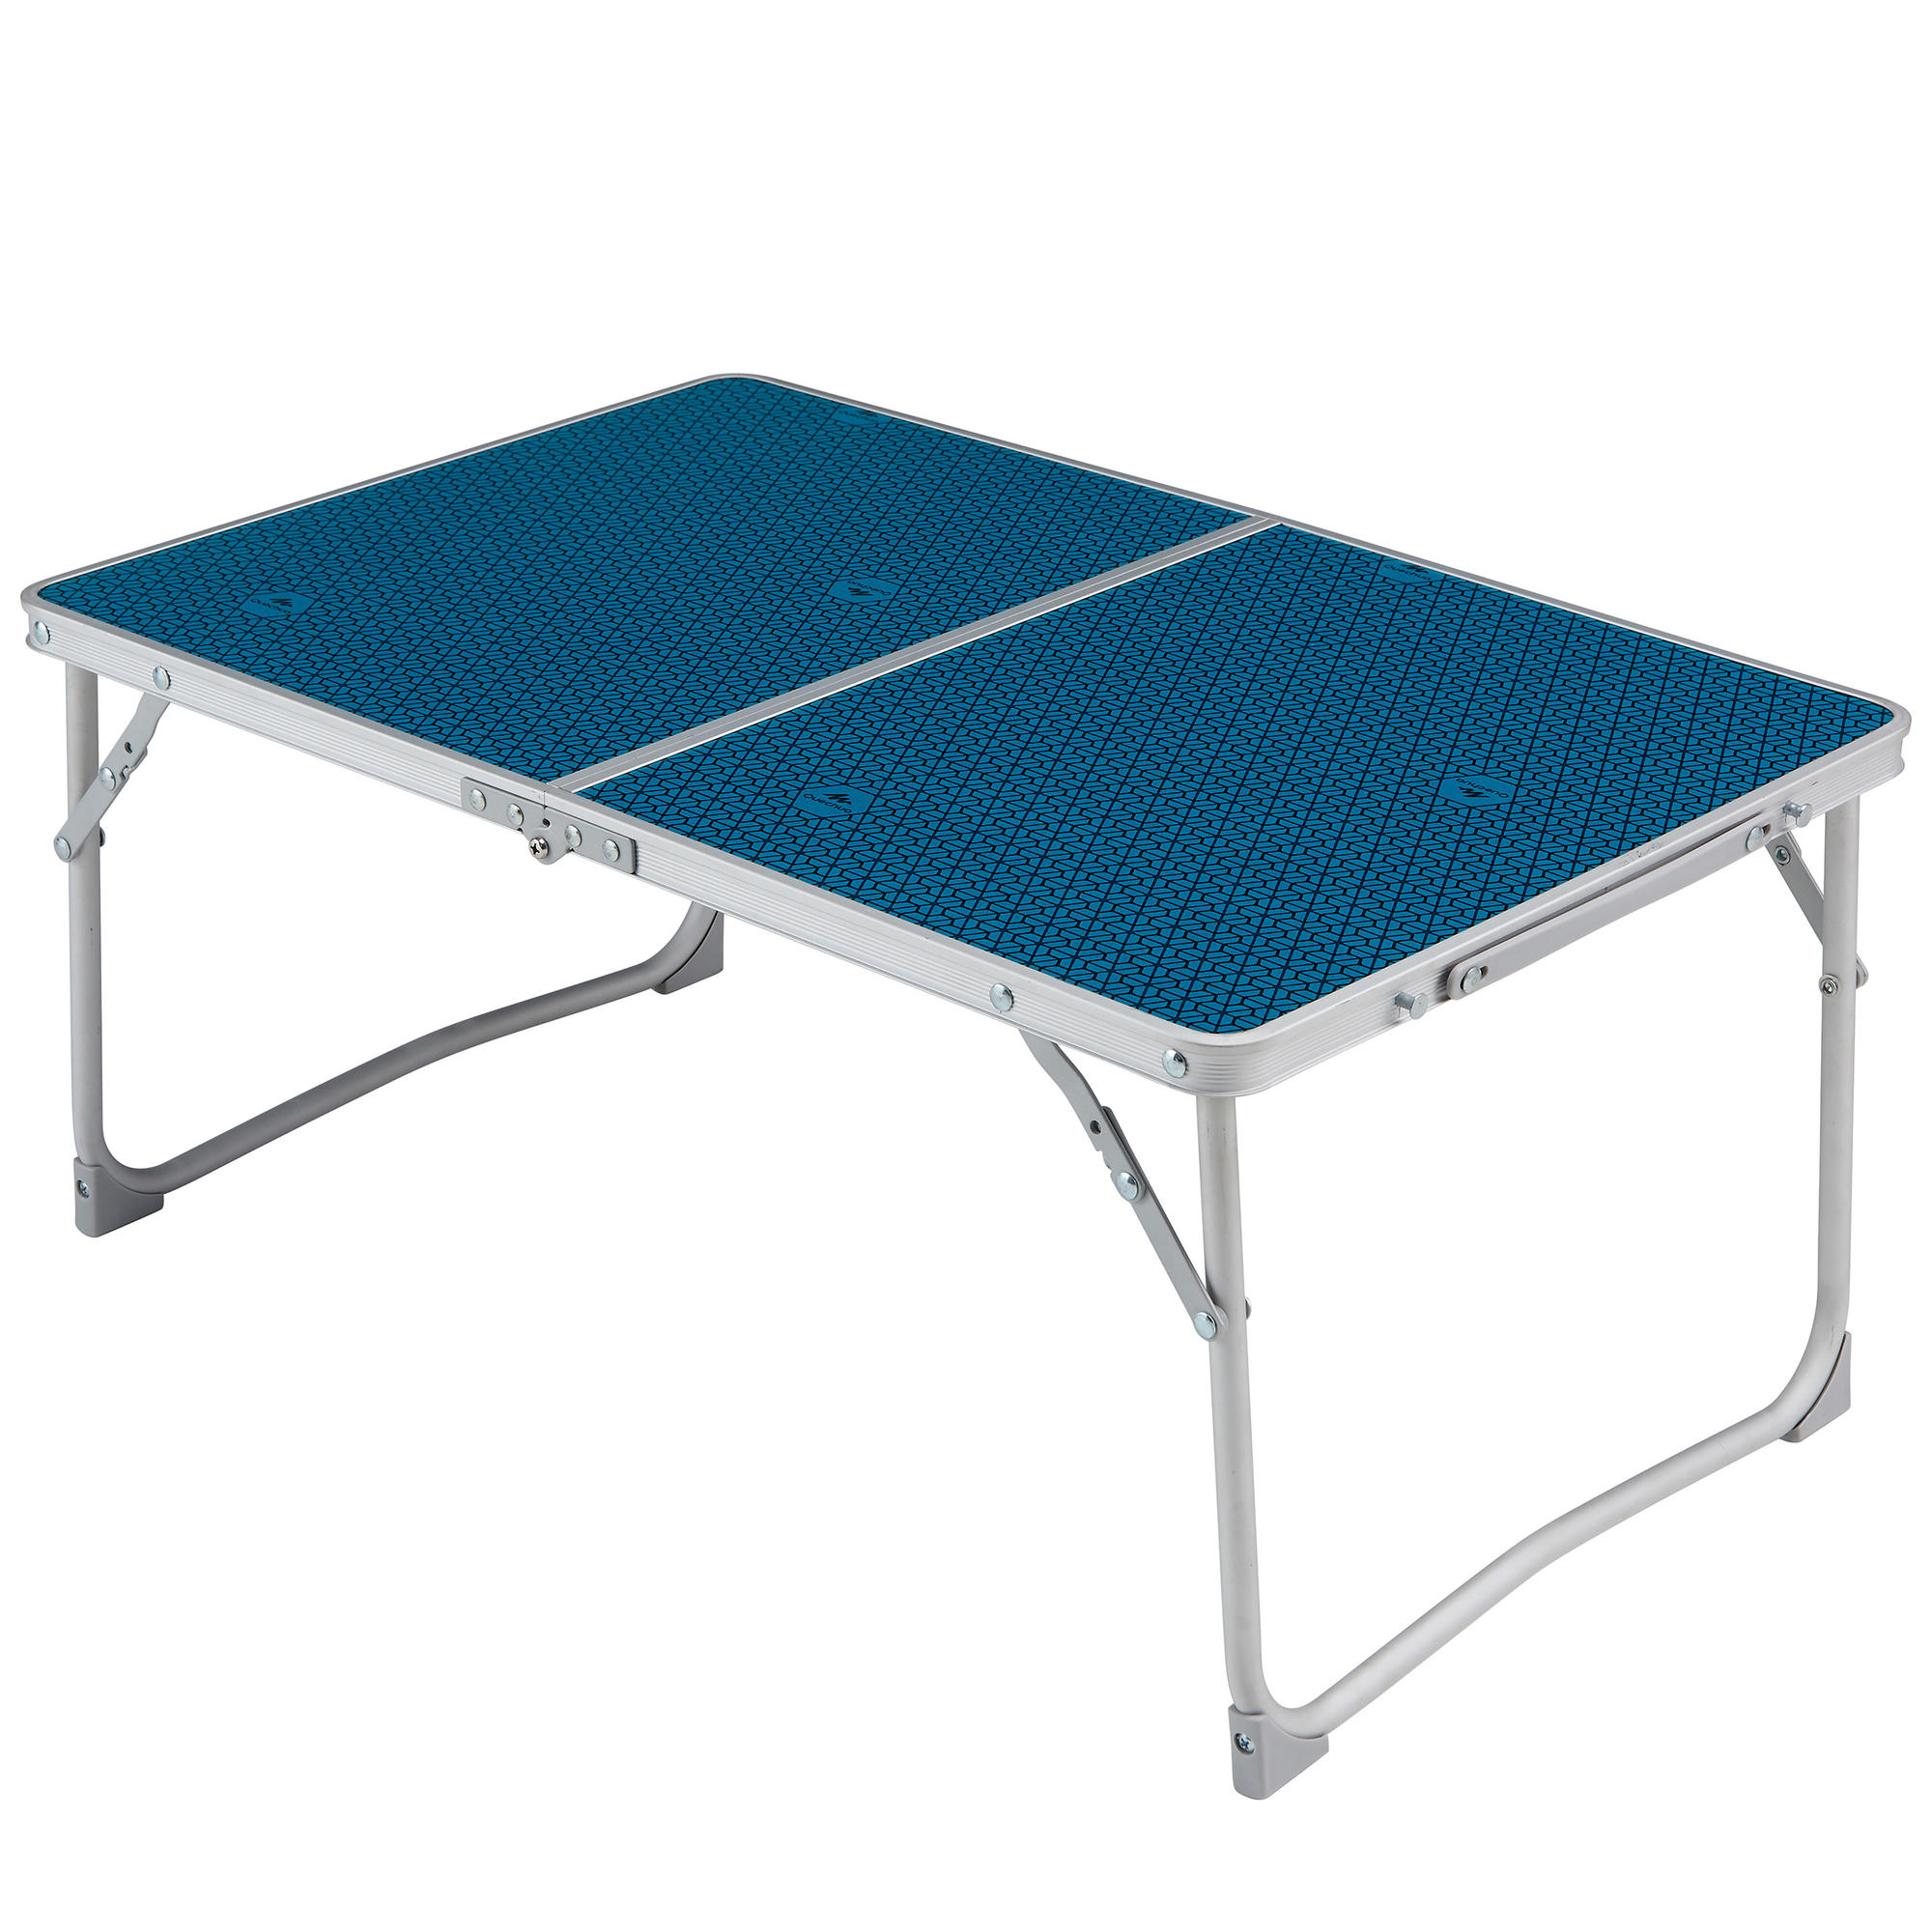 Folding camp table and chairs - Low Folding Table Blue